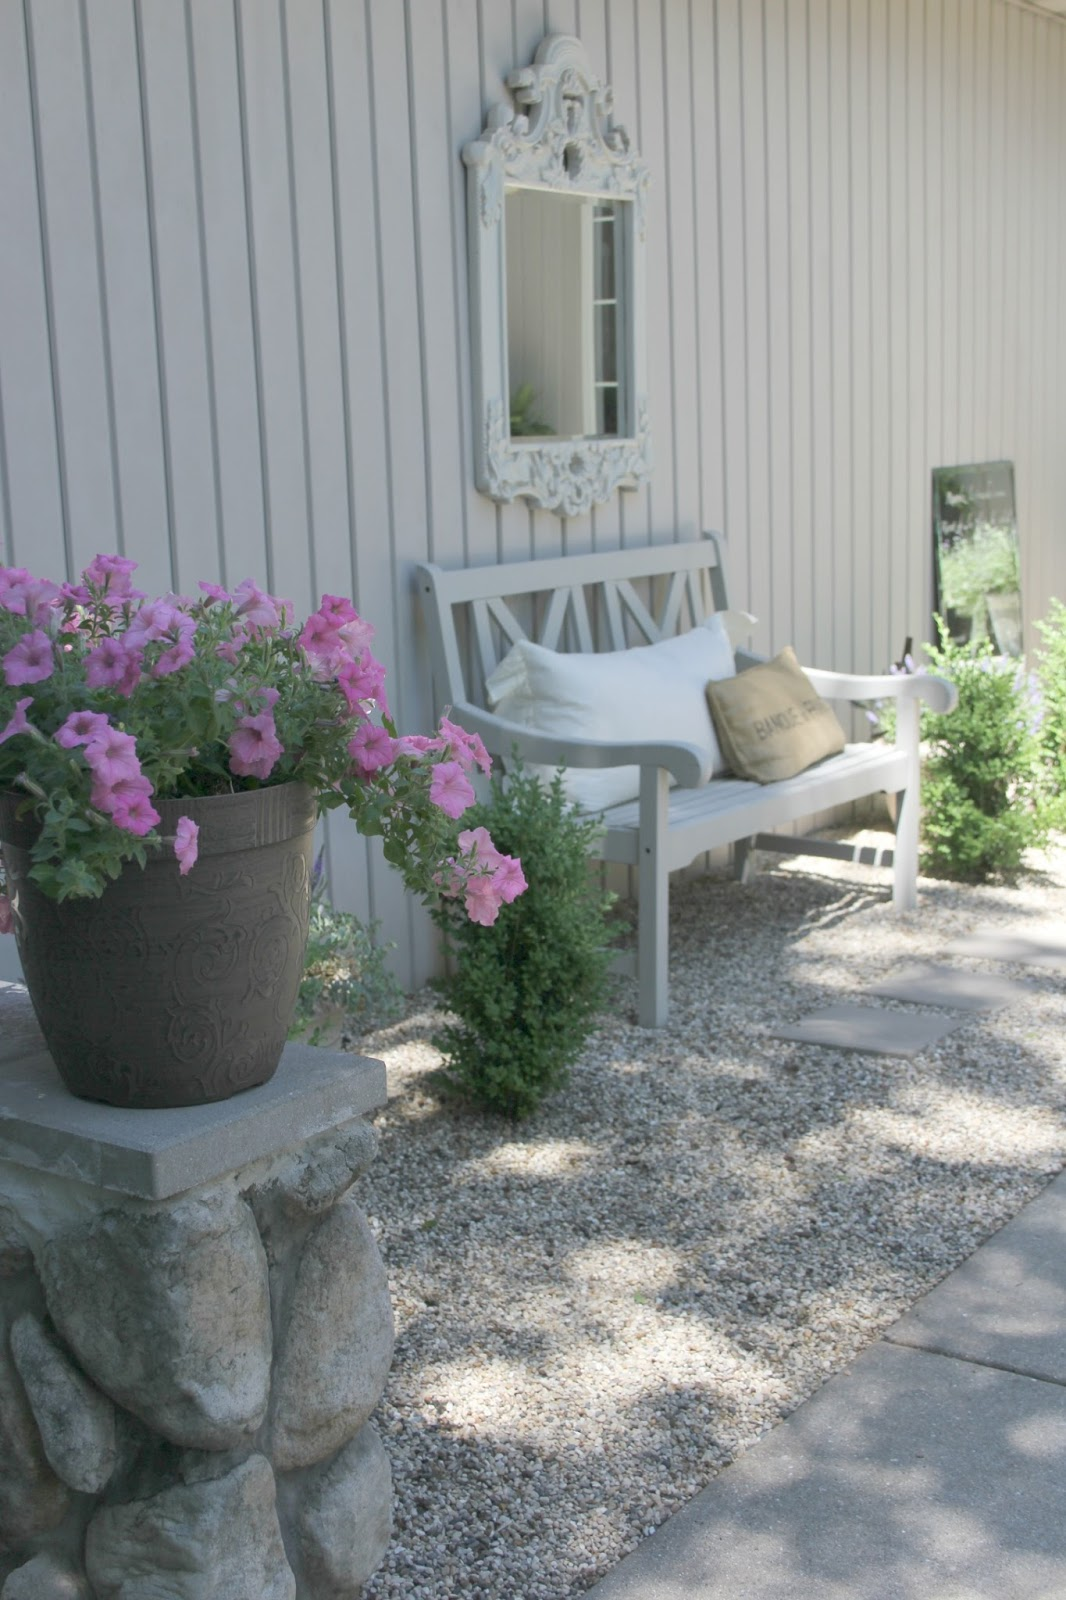 Beautiful French inspired pea gravel courtyard with bench and mirror - Hello Lovely Studio